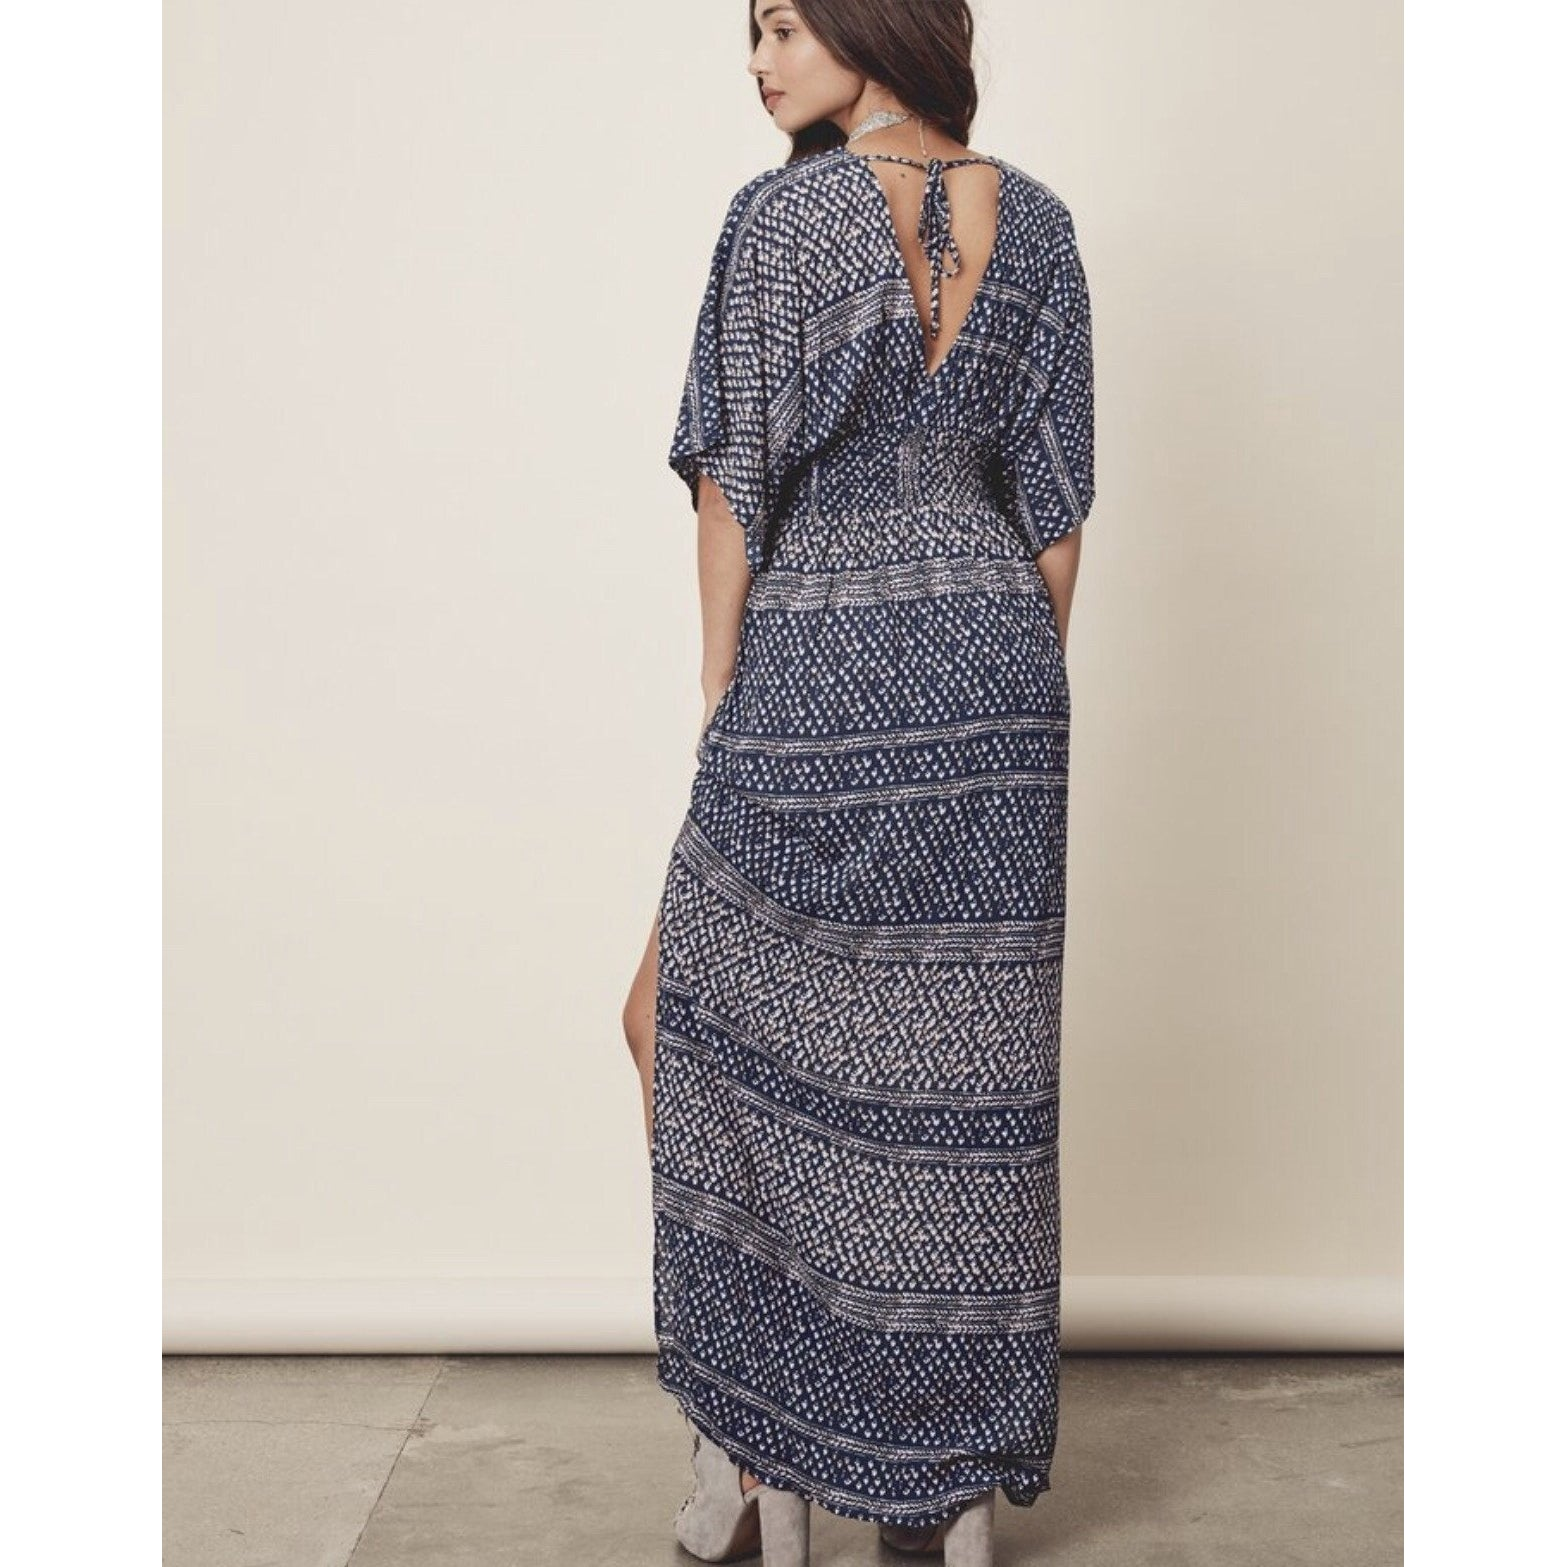 Iliana Dress-Maxi Dress-Savvy Chic Apparel-Savvy Chic Apparel